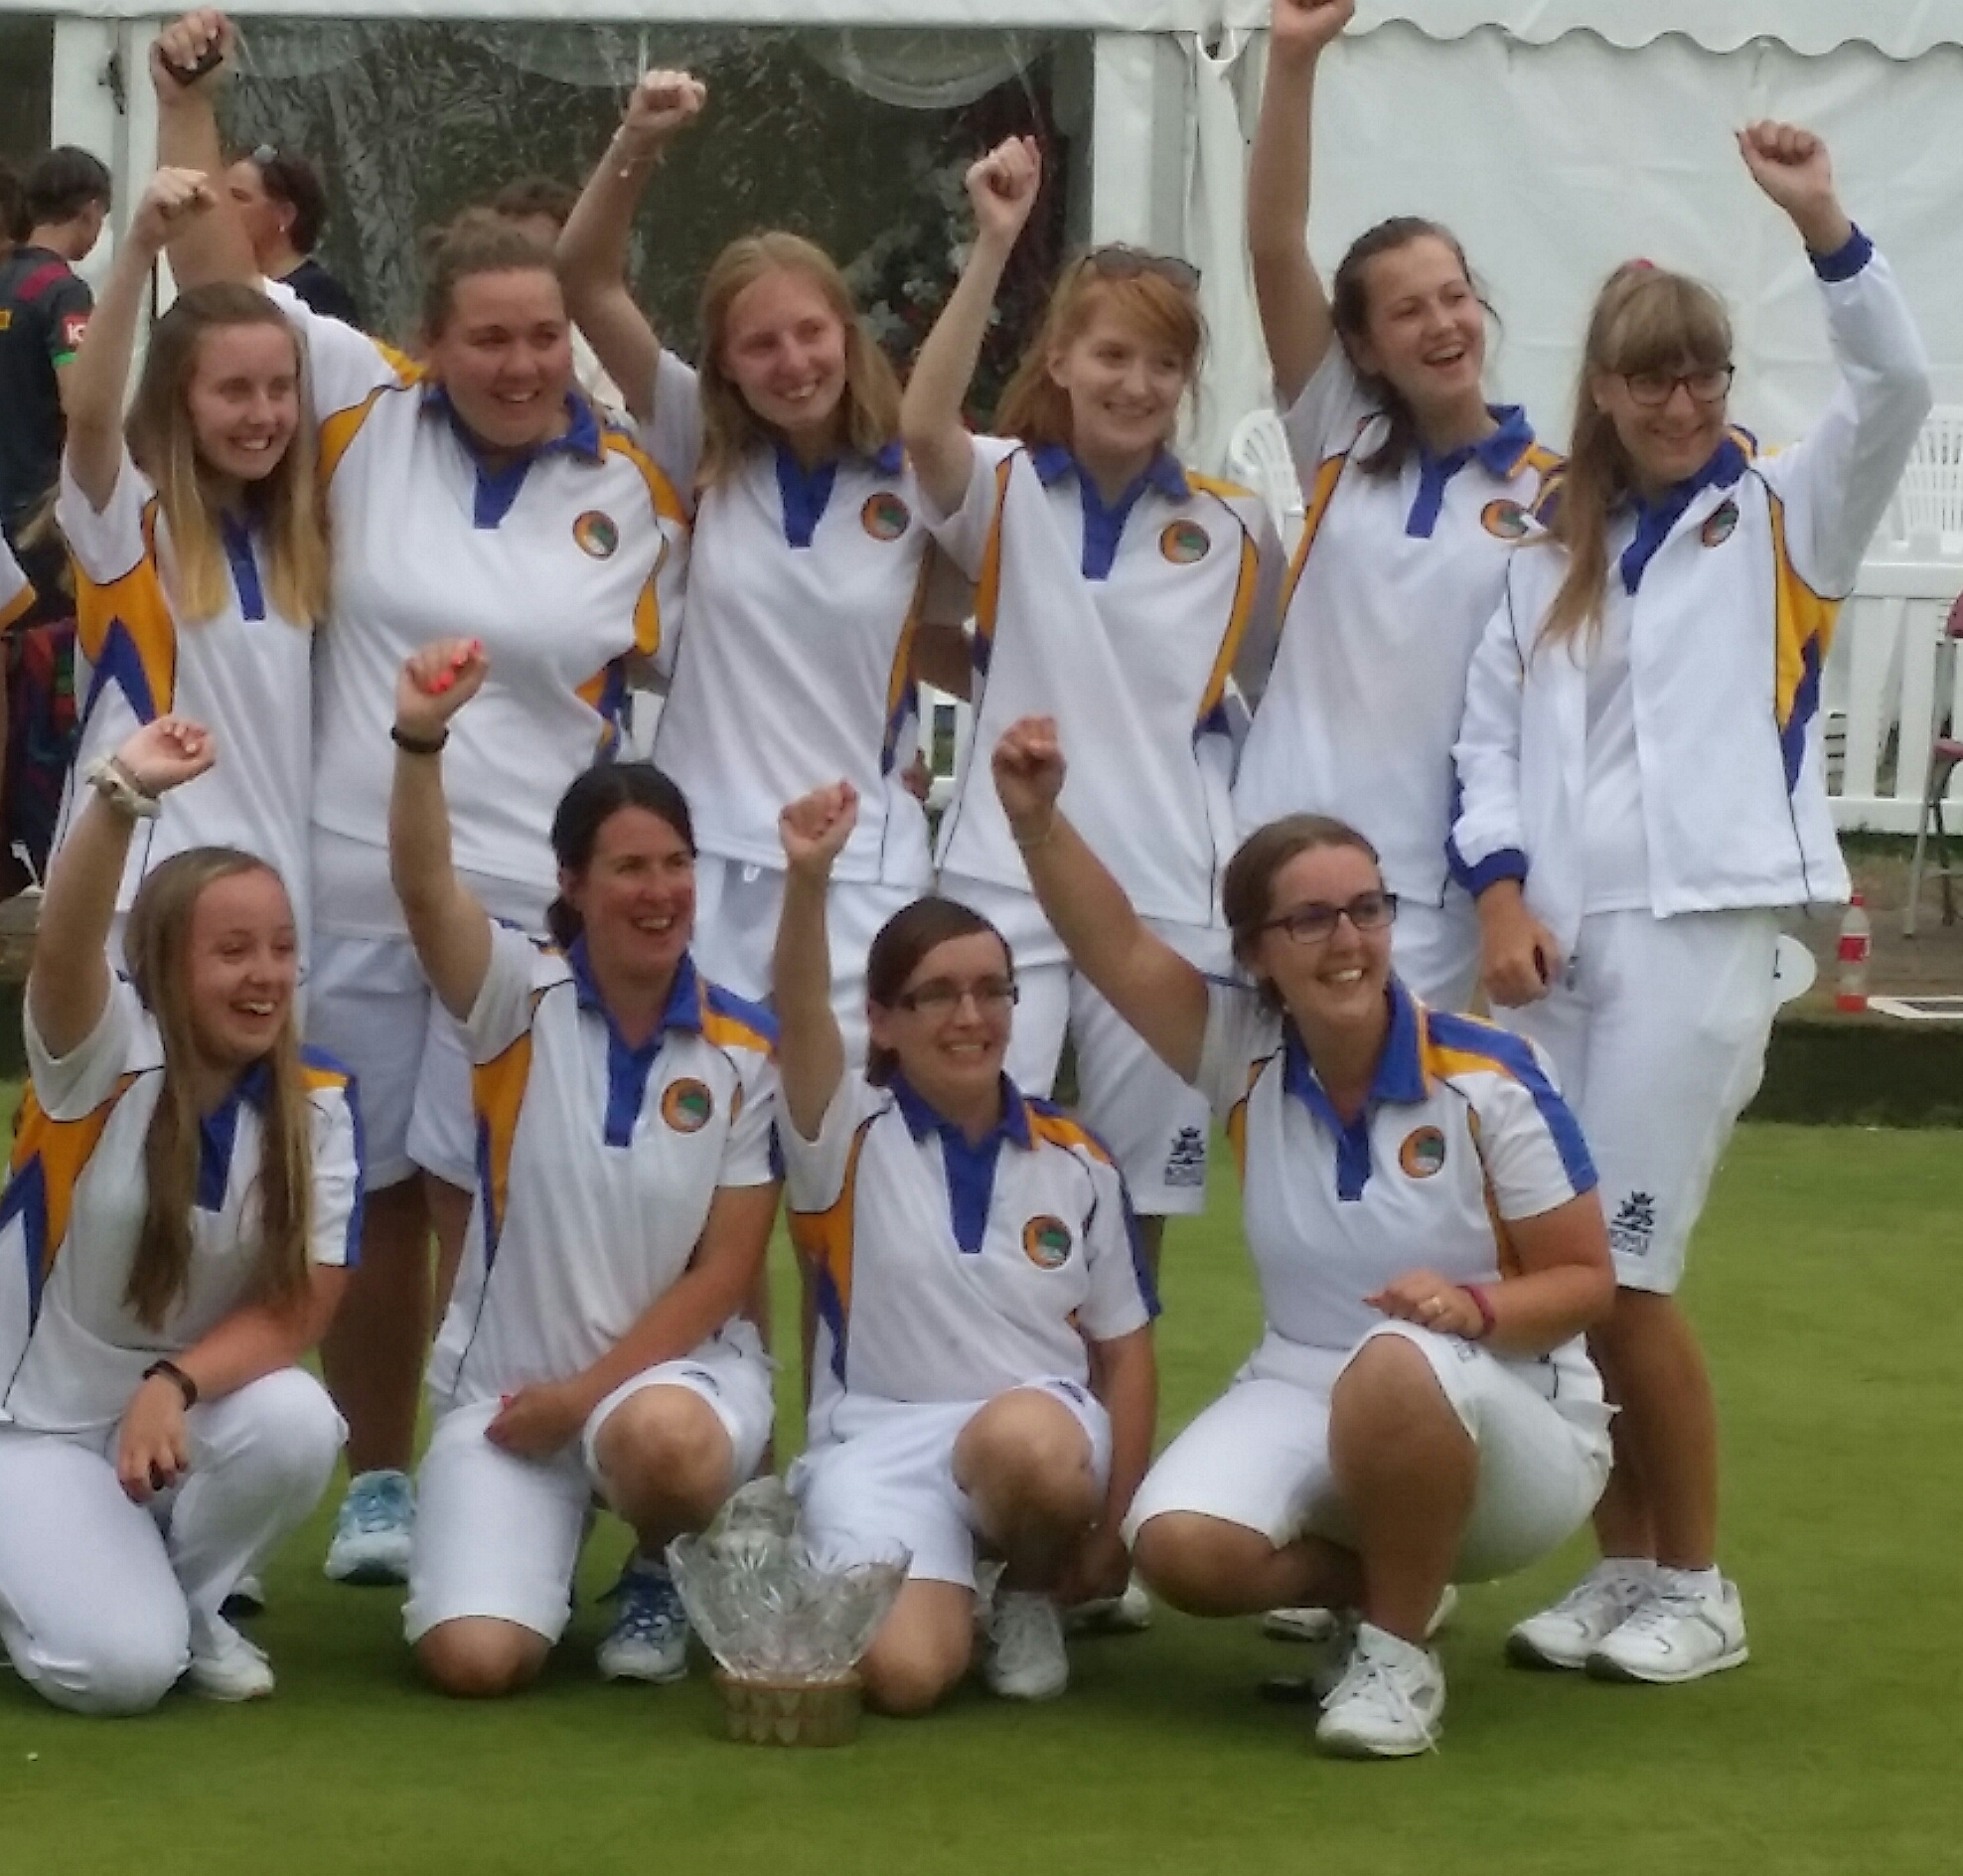 Wiltshire's triumphant Amy Rose Bowl winners are, back (l-r): Lucy Smith, Kathryn Yeoman, Katy Smith, Georgina Newman, Emily Jacob, Louise Rose (reserve); front: Kerry Hatherall (res), Charlie Godwin (captain), Rachel Martin, Joanna Hicks